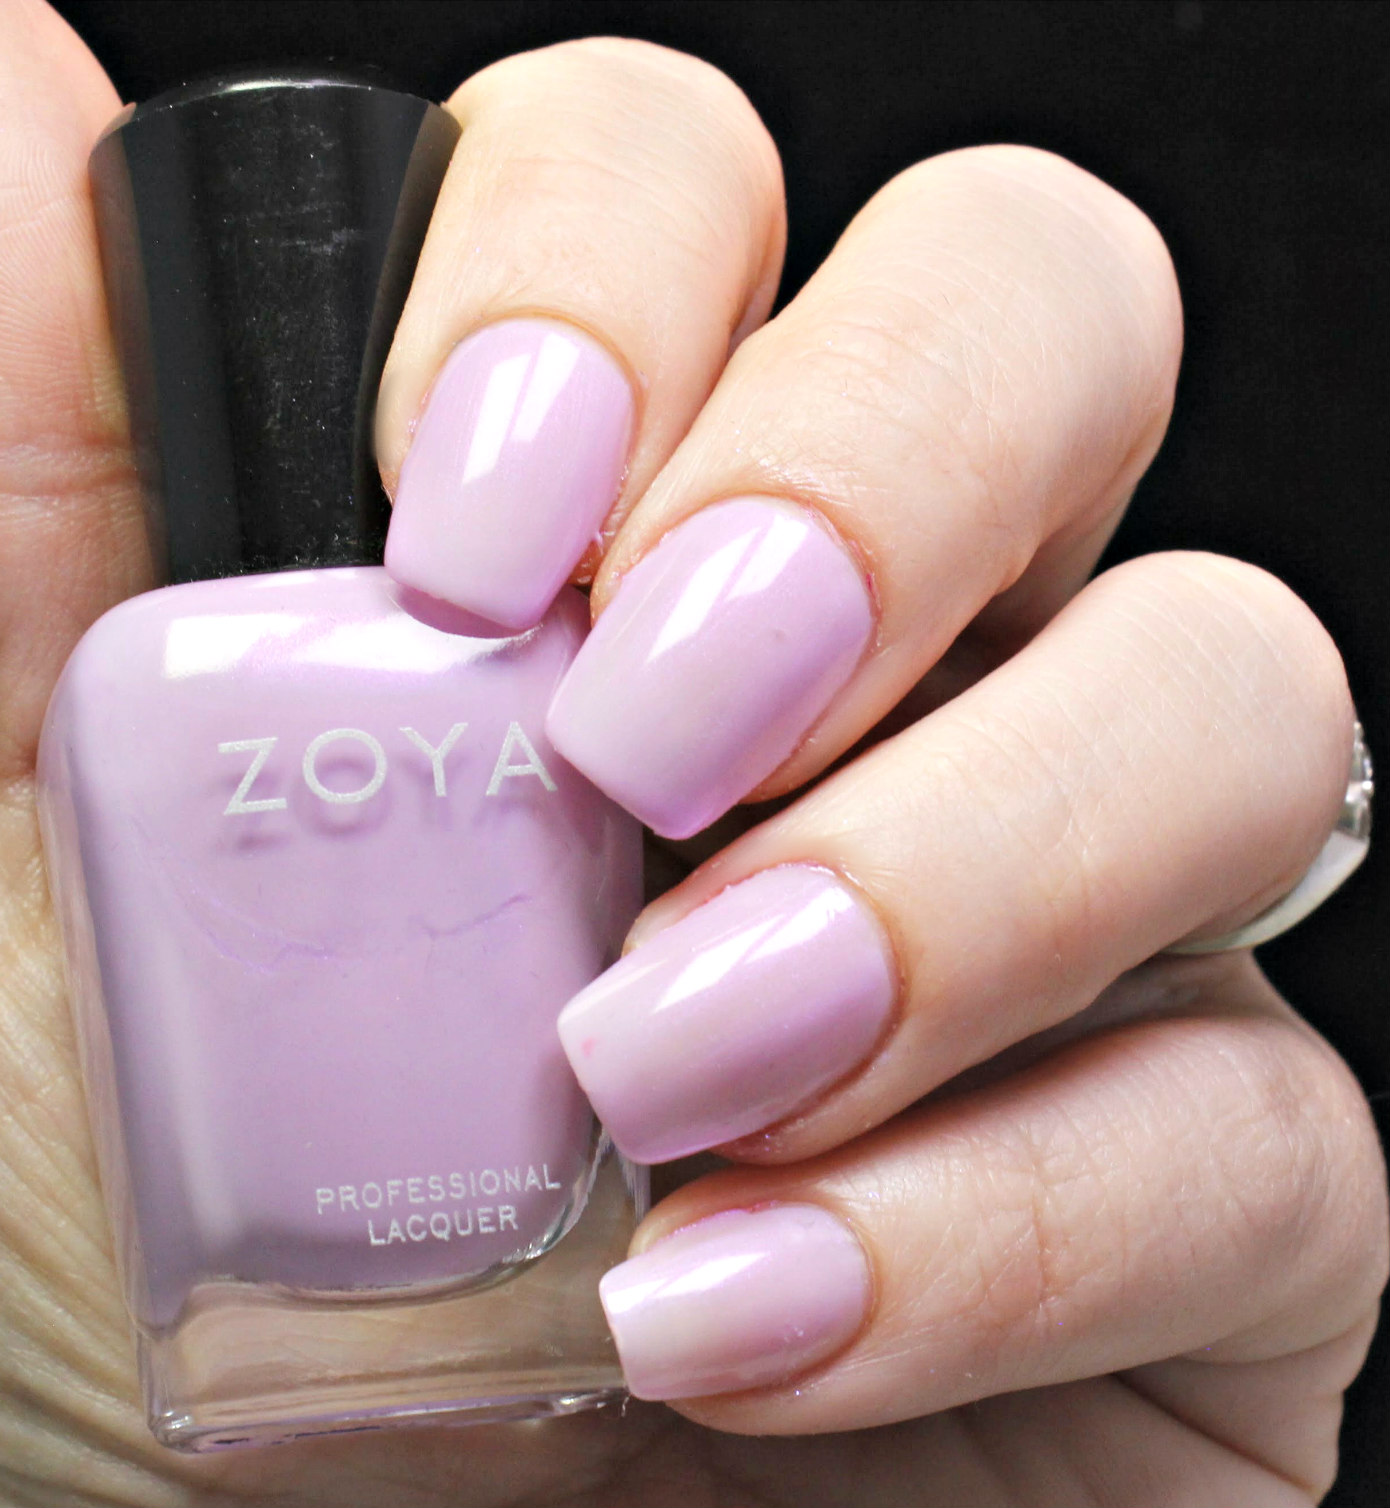 Join Me In Looking At Thrive From Zoya Smashbox Photo Bombshell 5 Piece Color Collection Did Add A Lavender Into This But Not Without Some Sass Haruko Has Shimmer Throughout The Too